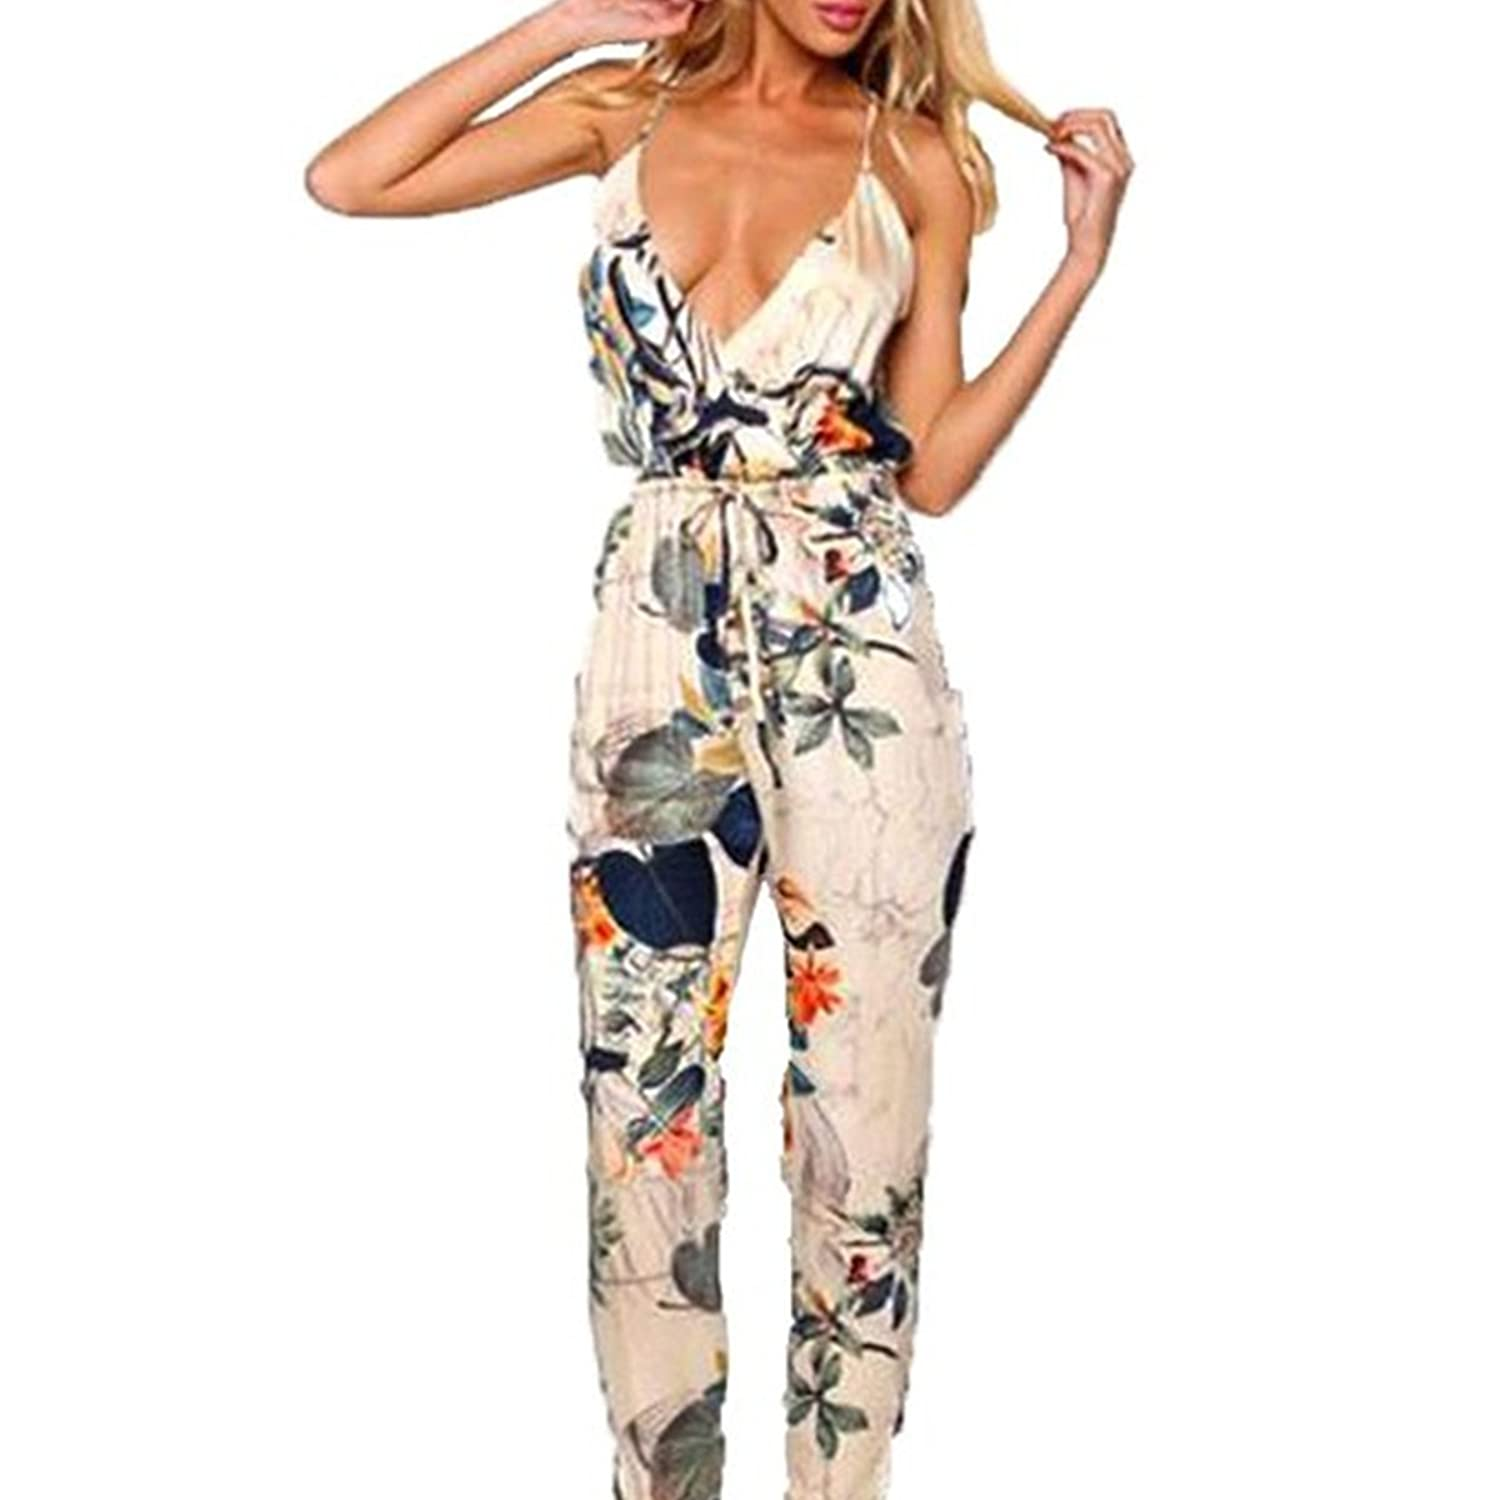 LOBTY Damen Jumpsuit Business V-Ausschnitt Einteiler Overall Strampelhöschen Cocktail Kleider Playsuits Romper High Waist Party Club